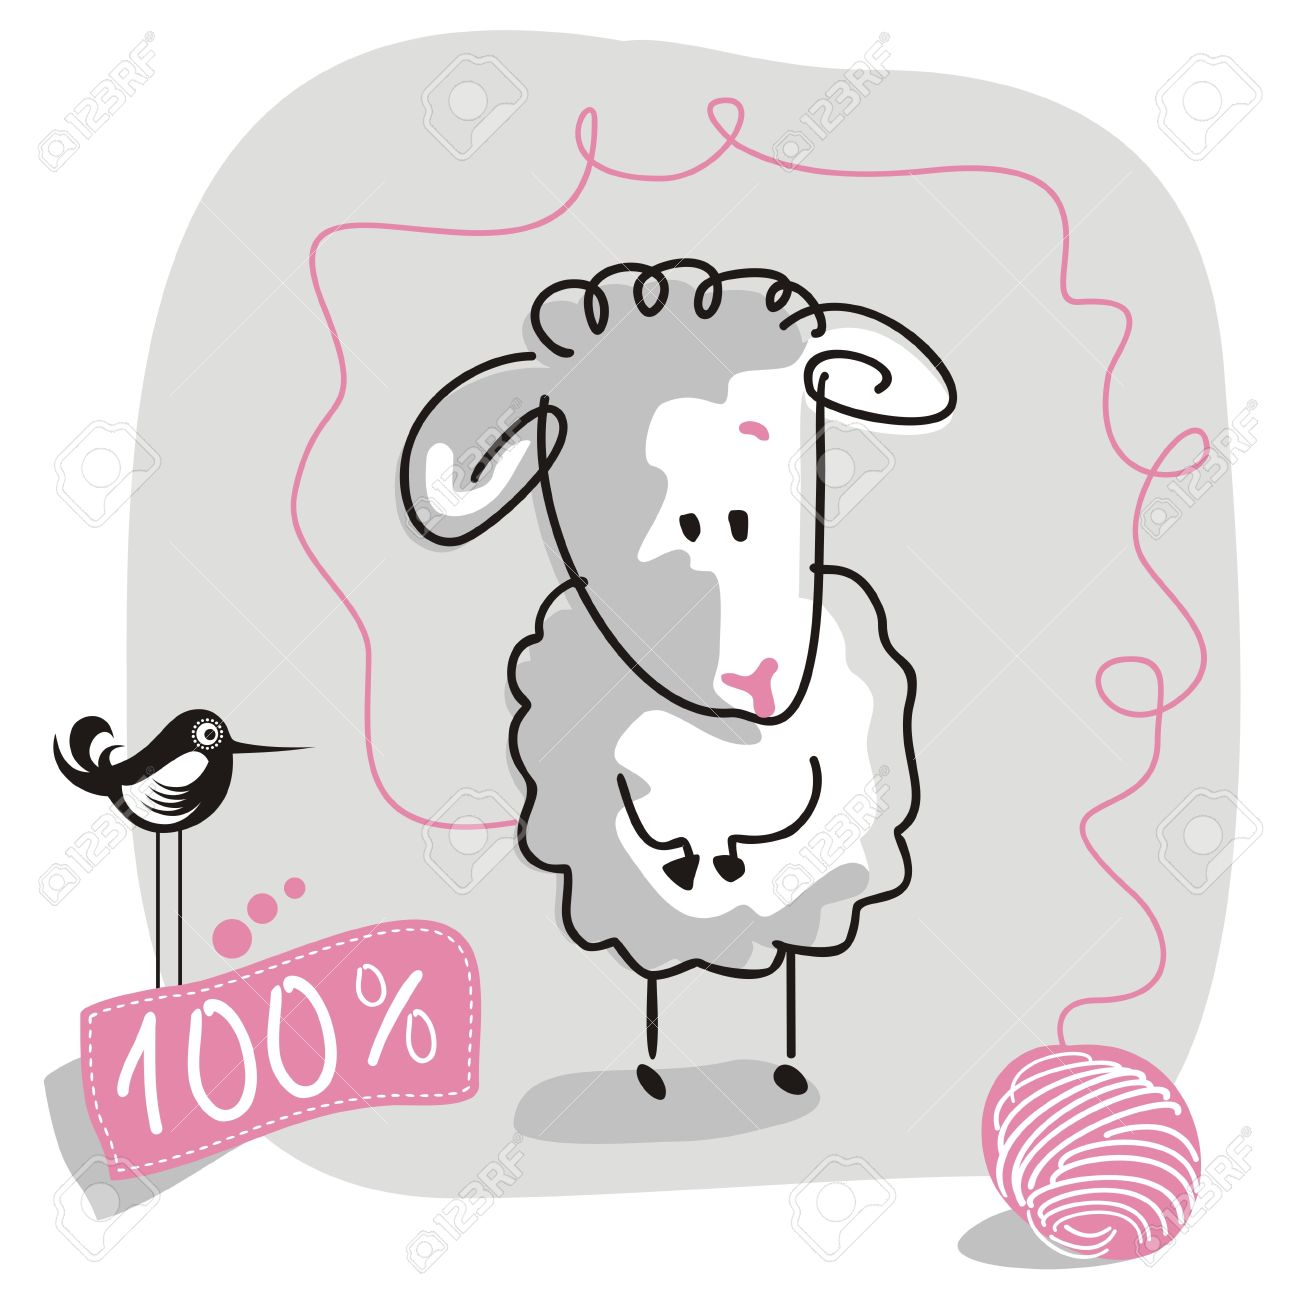 Cute Doodled Sheep With Wool Quality Label Royalty Free Cliparts.